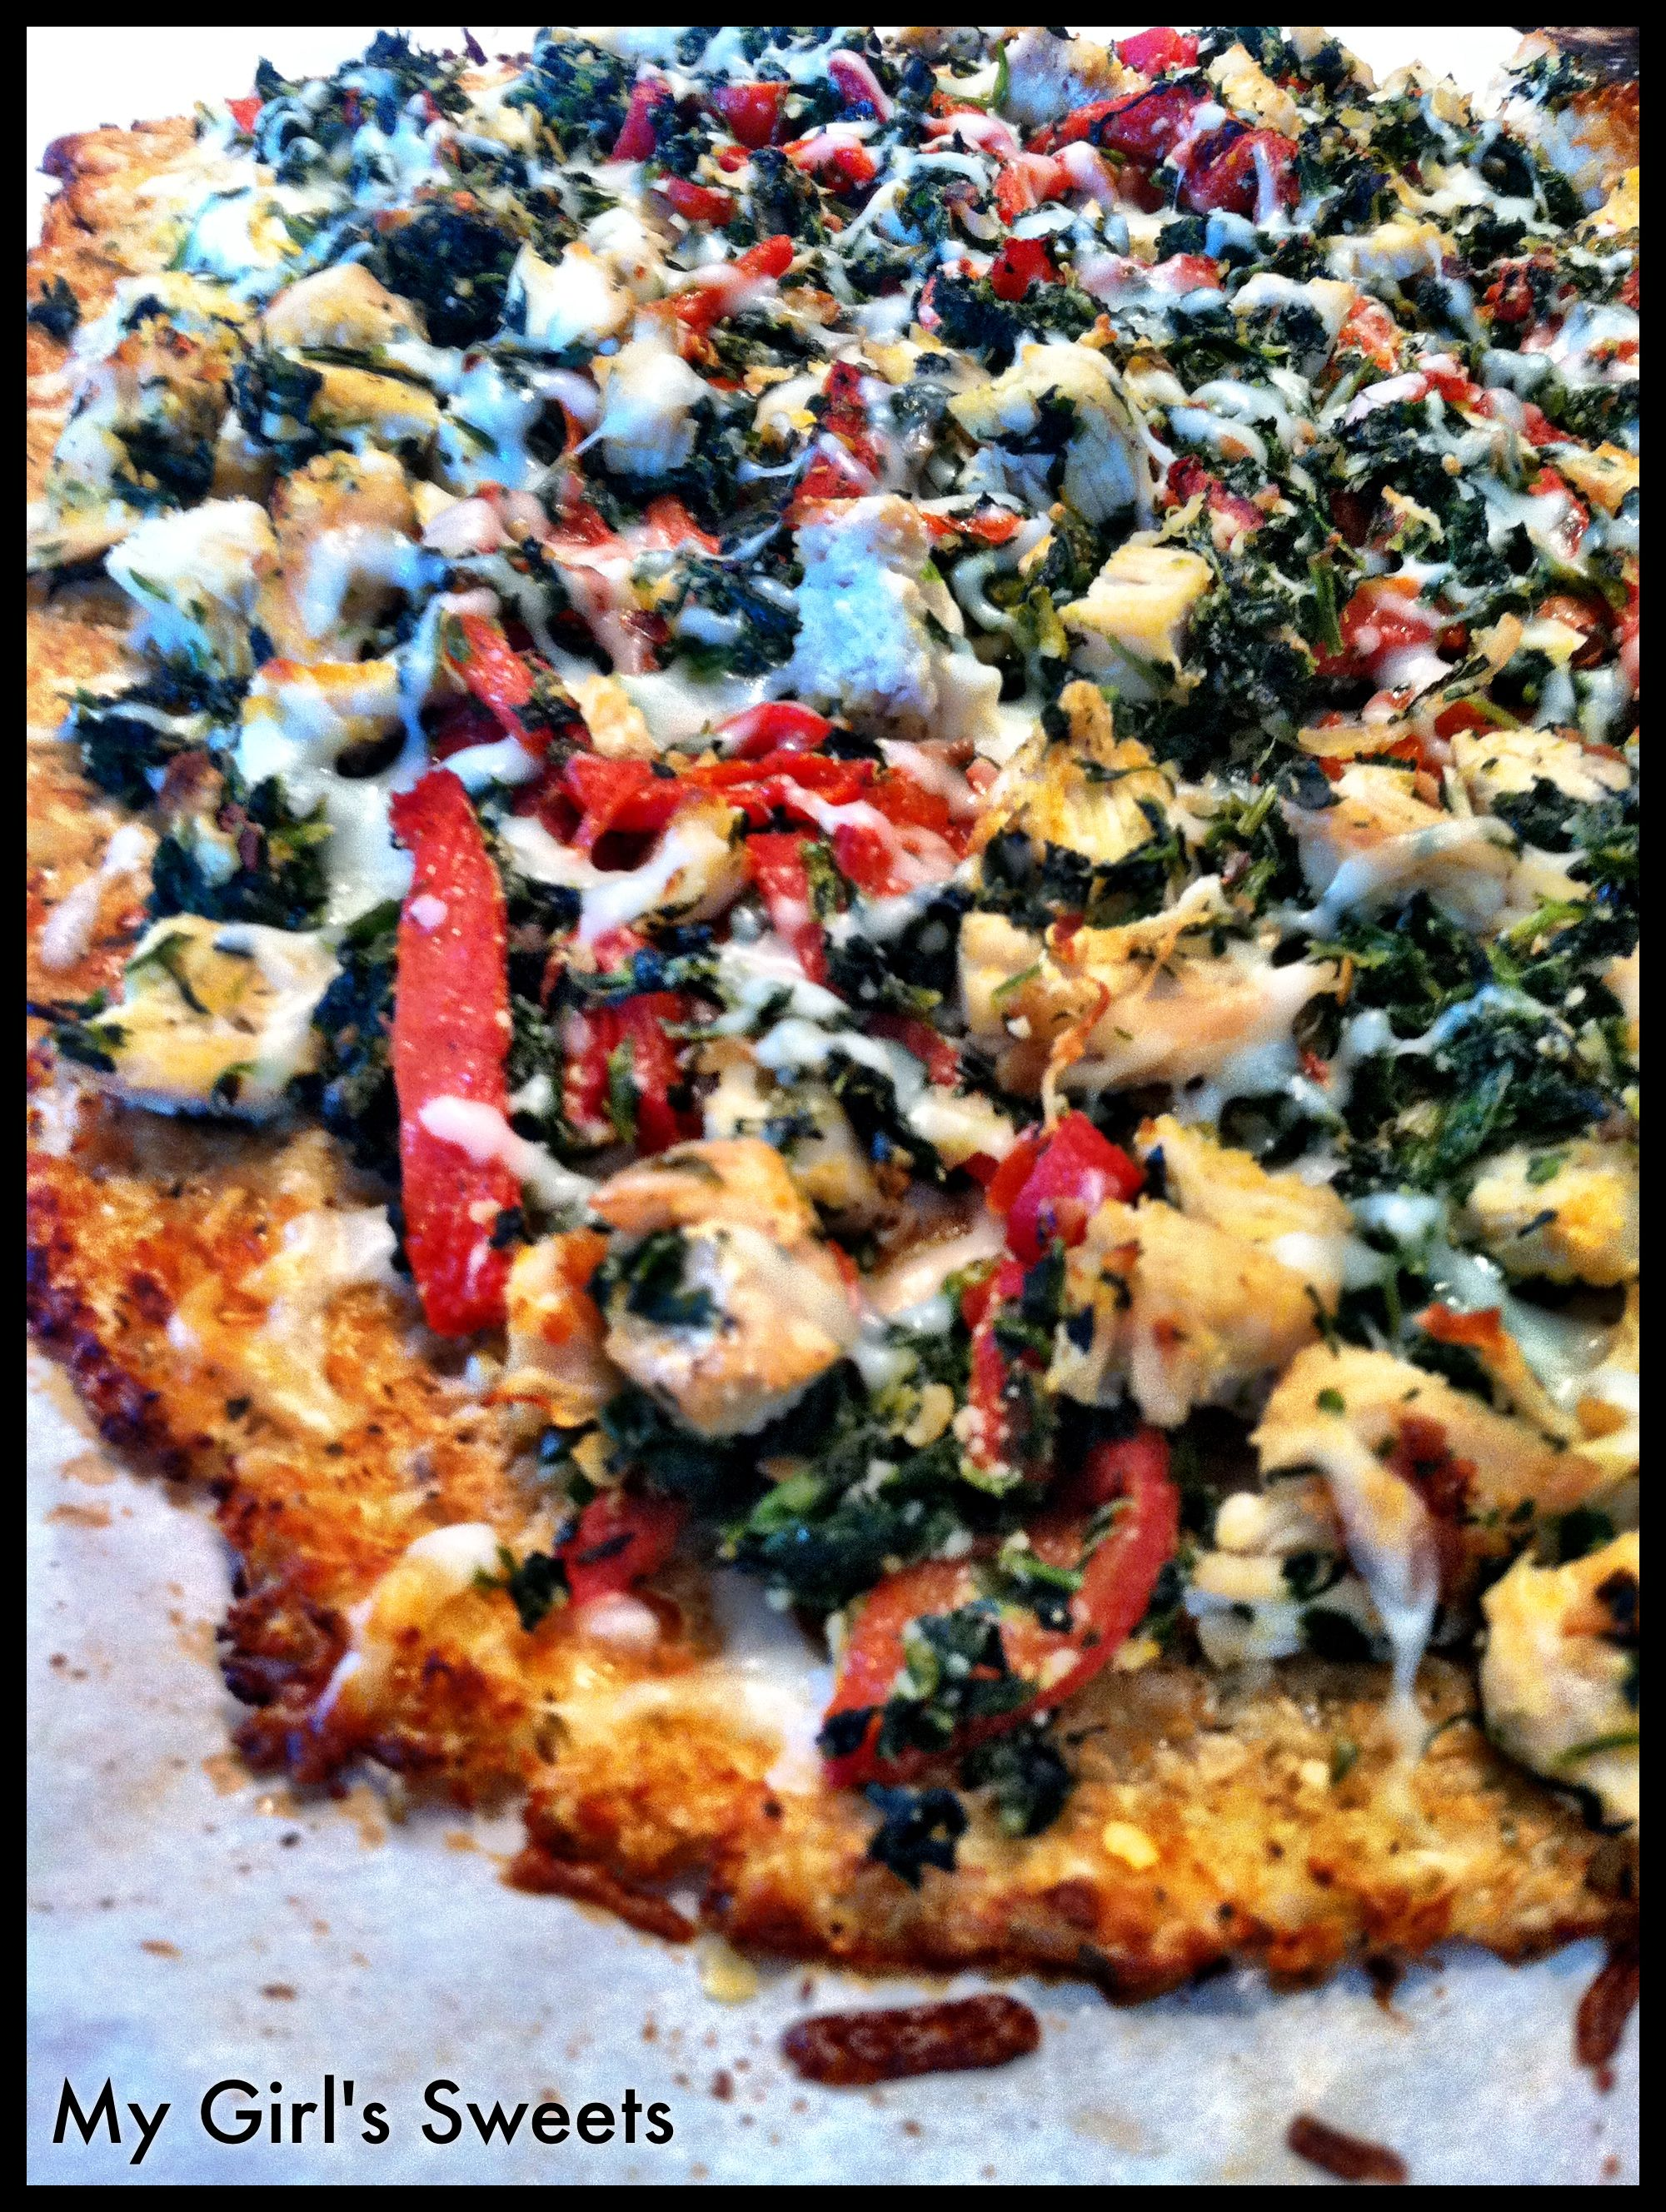 Chicken, Spinach, and Roasted Red Pepper Pizza (Gluten Free)